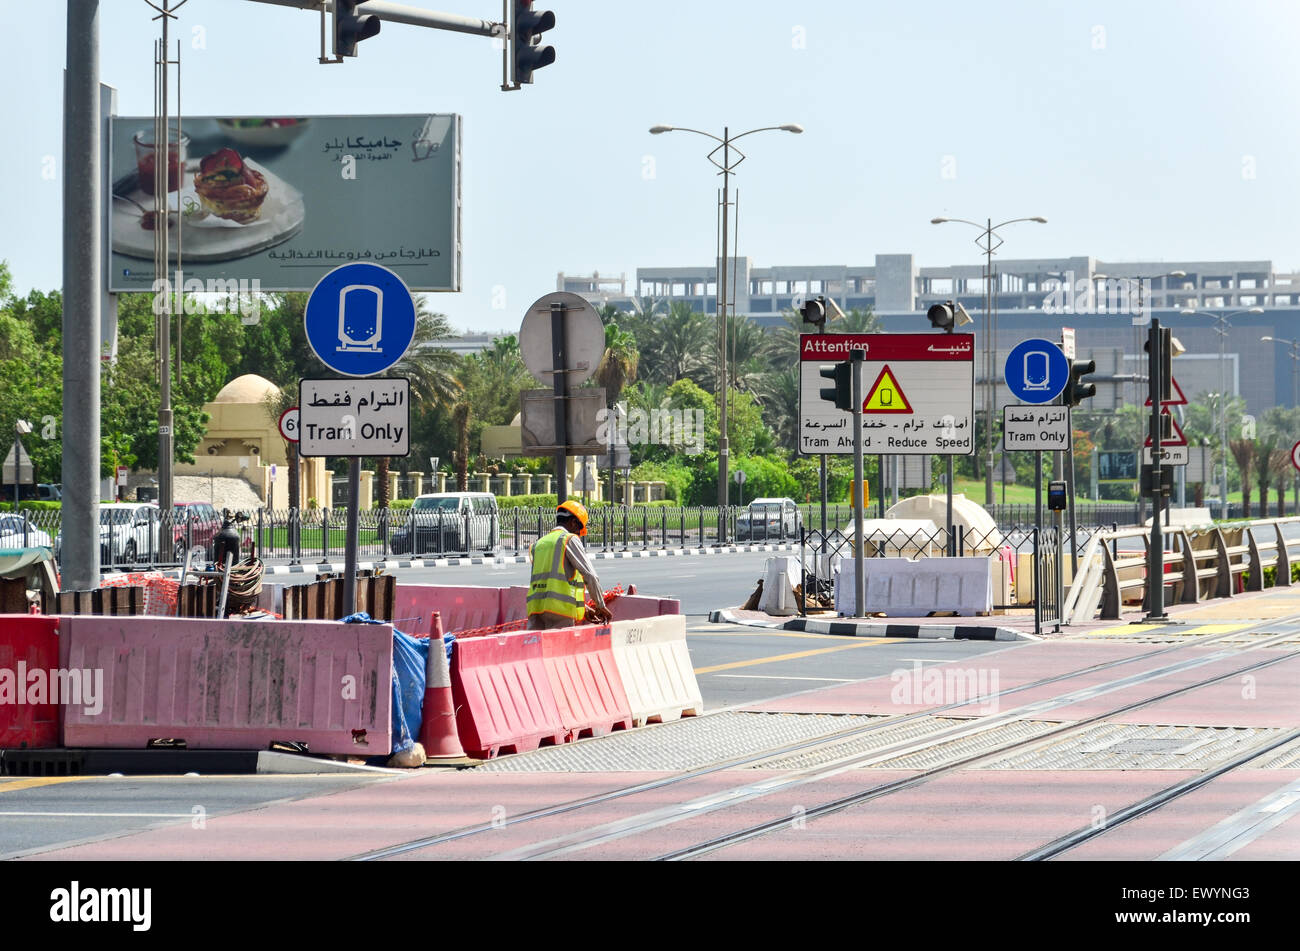 Migrant construction workers working in the middle of the road in Dubai, UAE - Stock Image